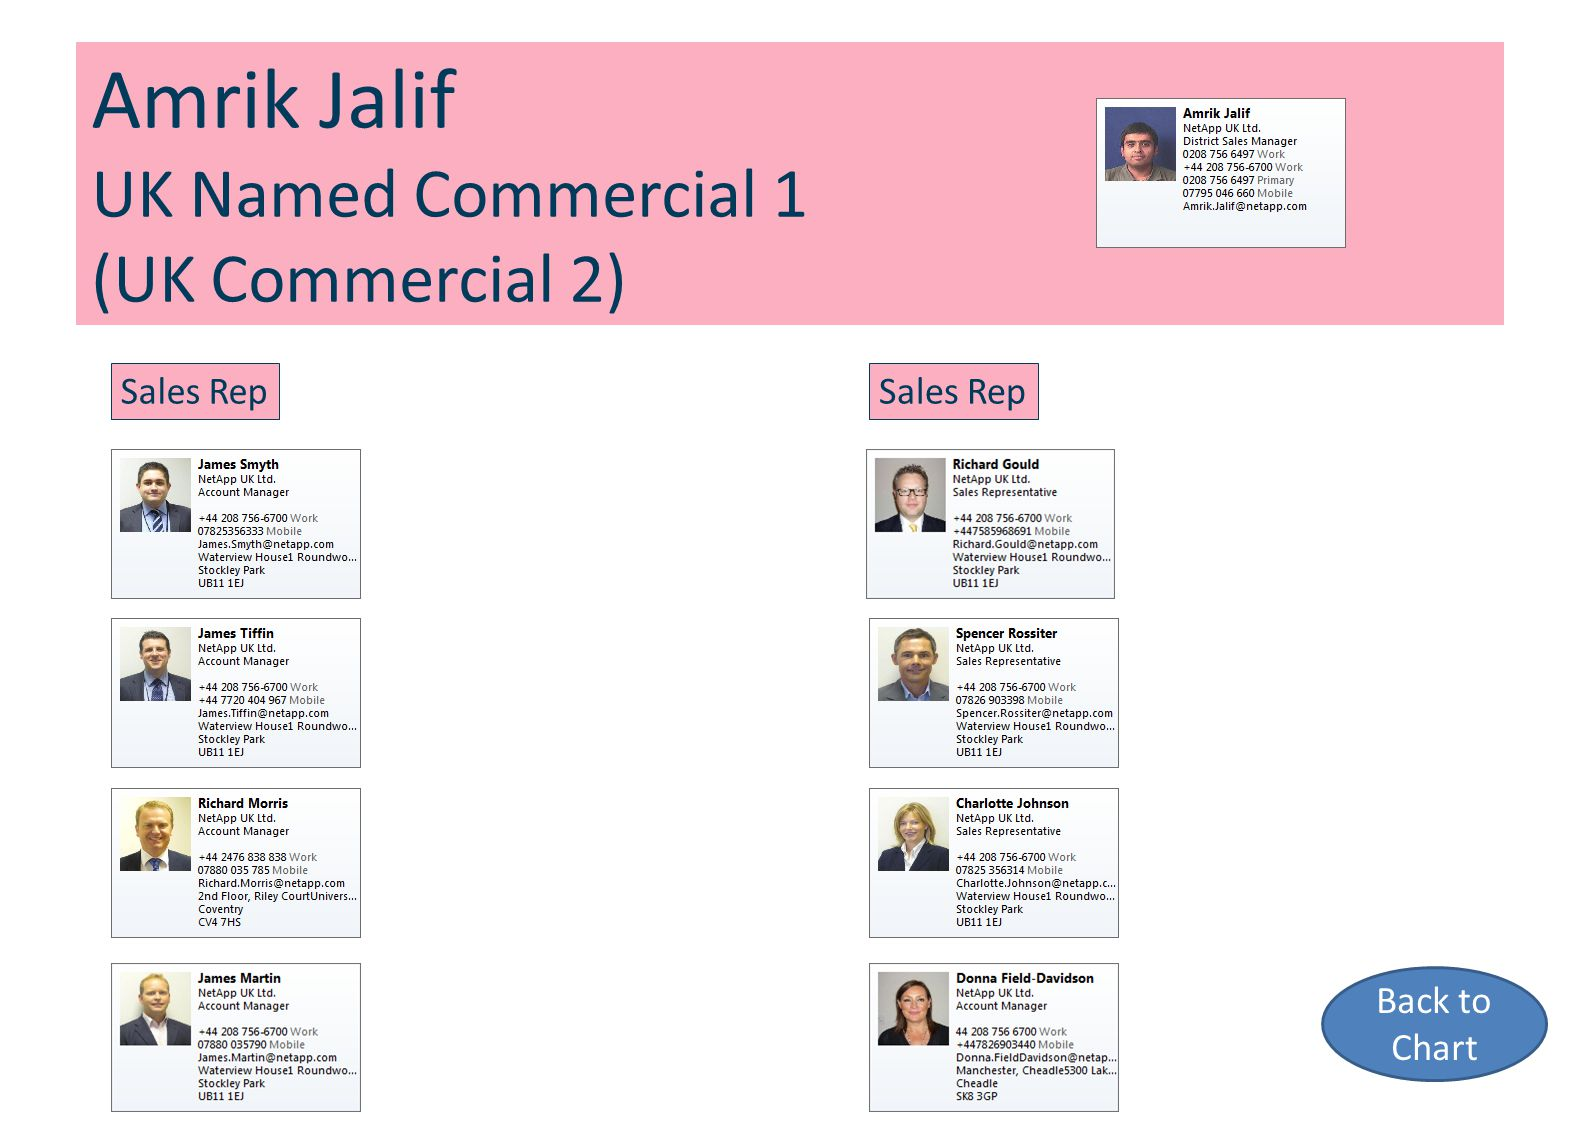 Amrik Jalif UK Named Commercial 1 (UK Commercial 2)